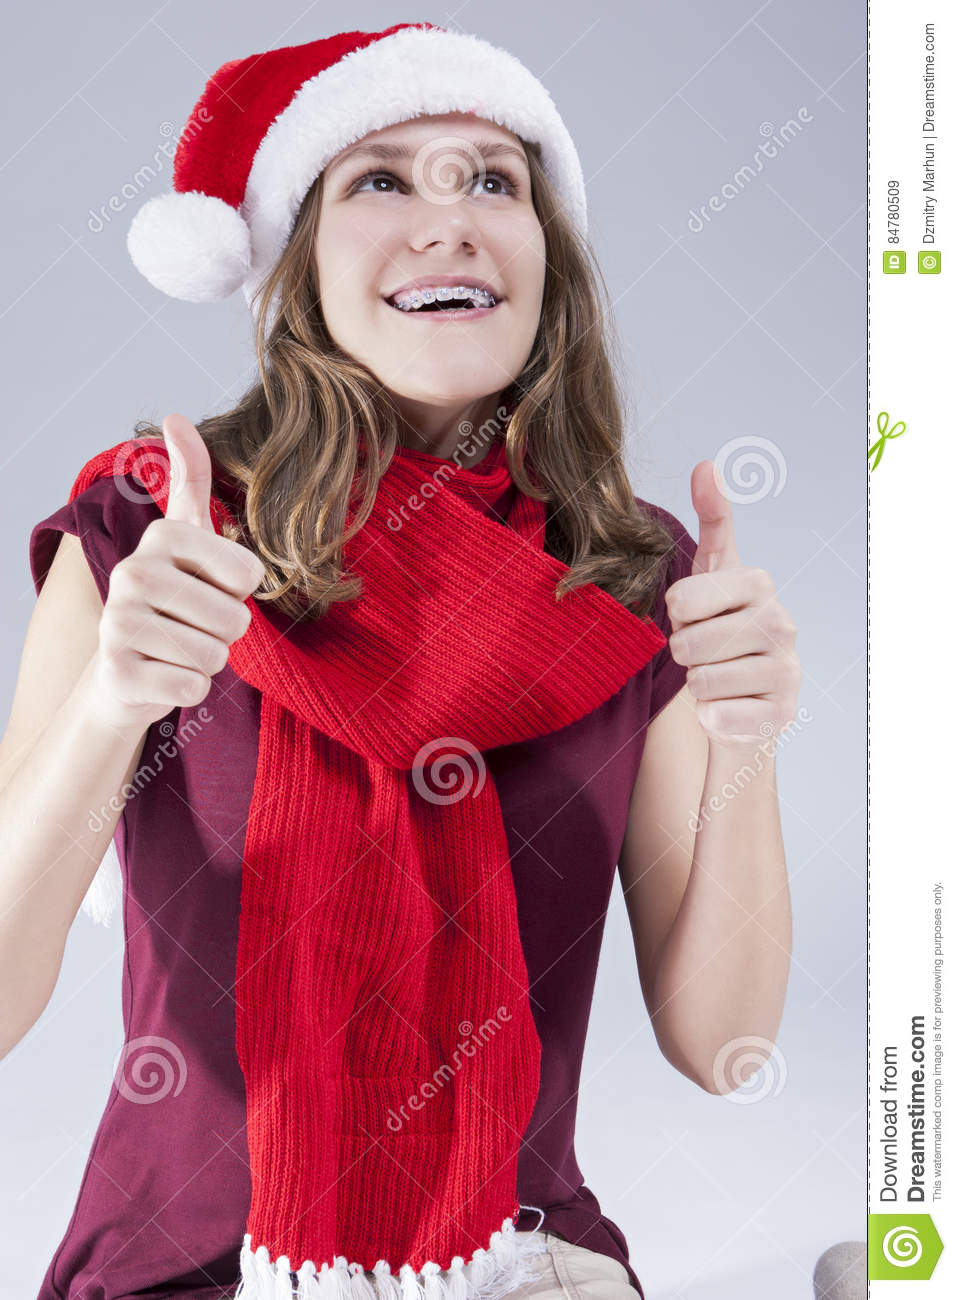 Concepts dentaires de traitement Adolescent caucasien de sourire heureux en Santa Hat With Teeth Brackets